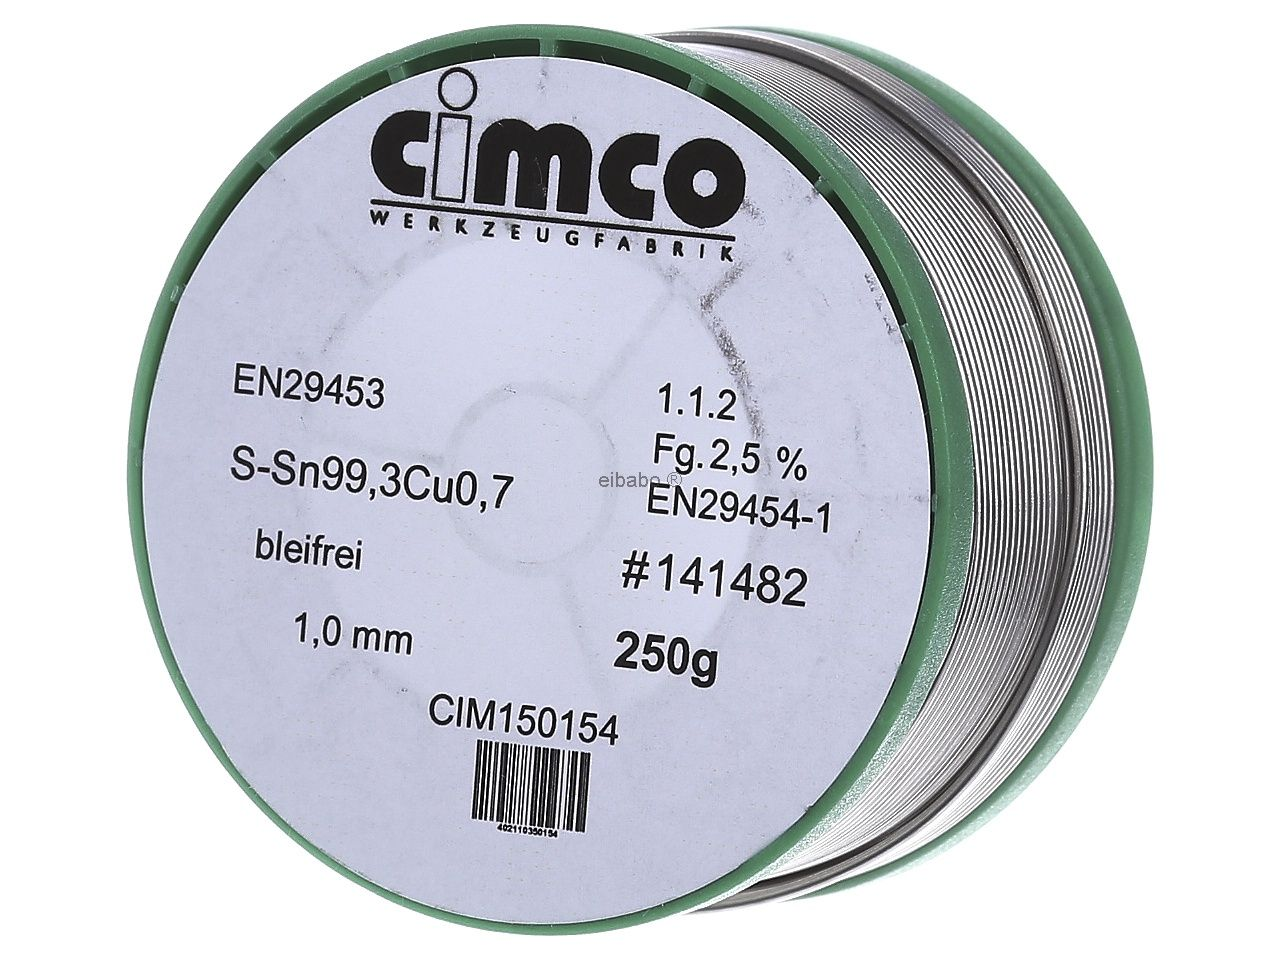 Cimco Elektroniklot 60/% 1,5mm 250g 15 0064